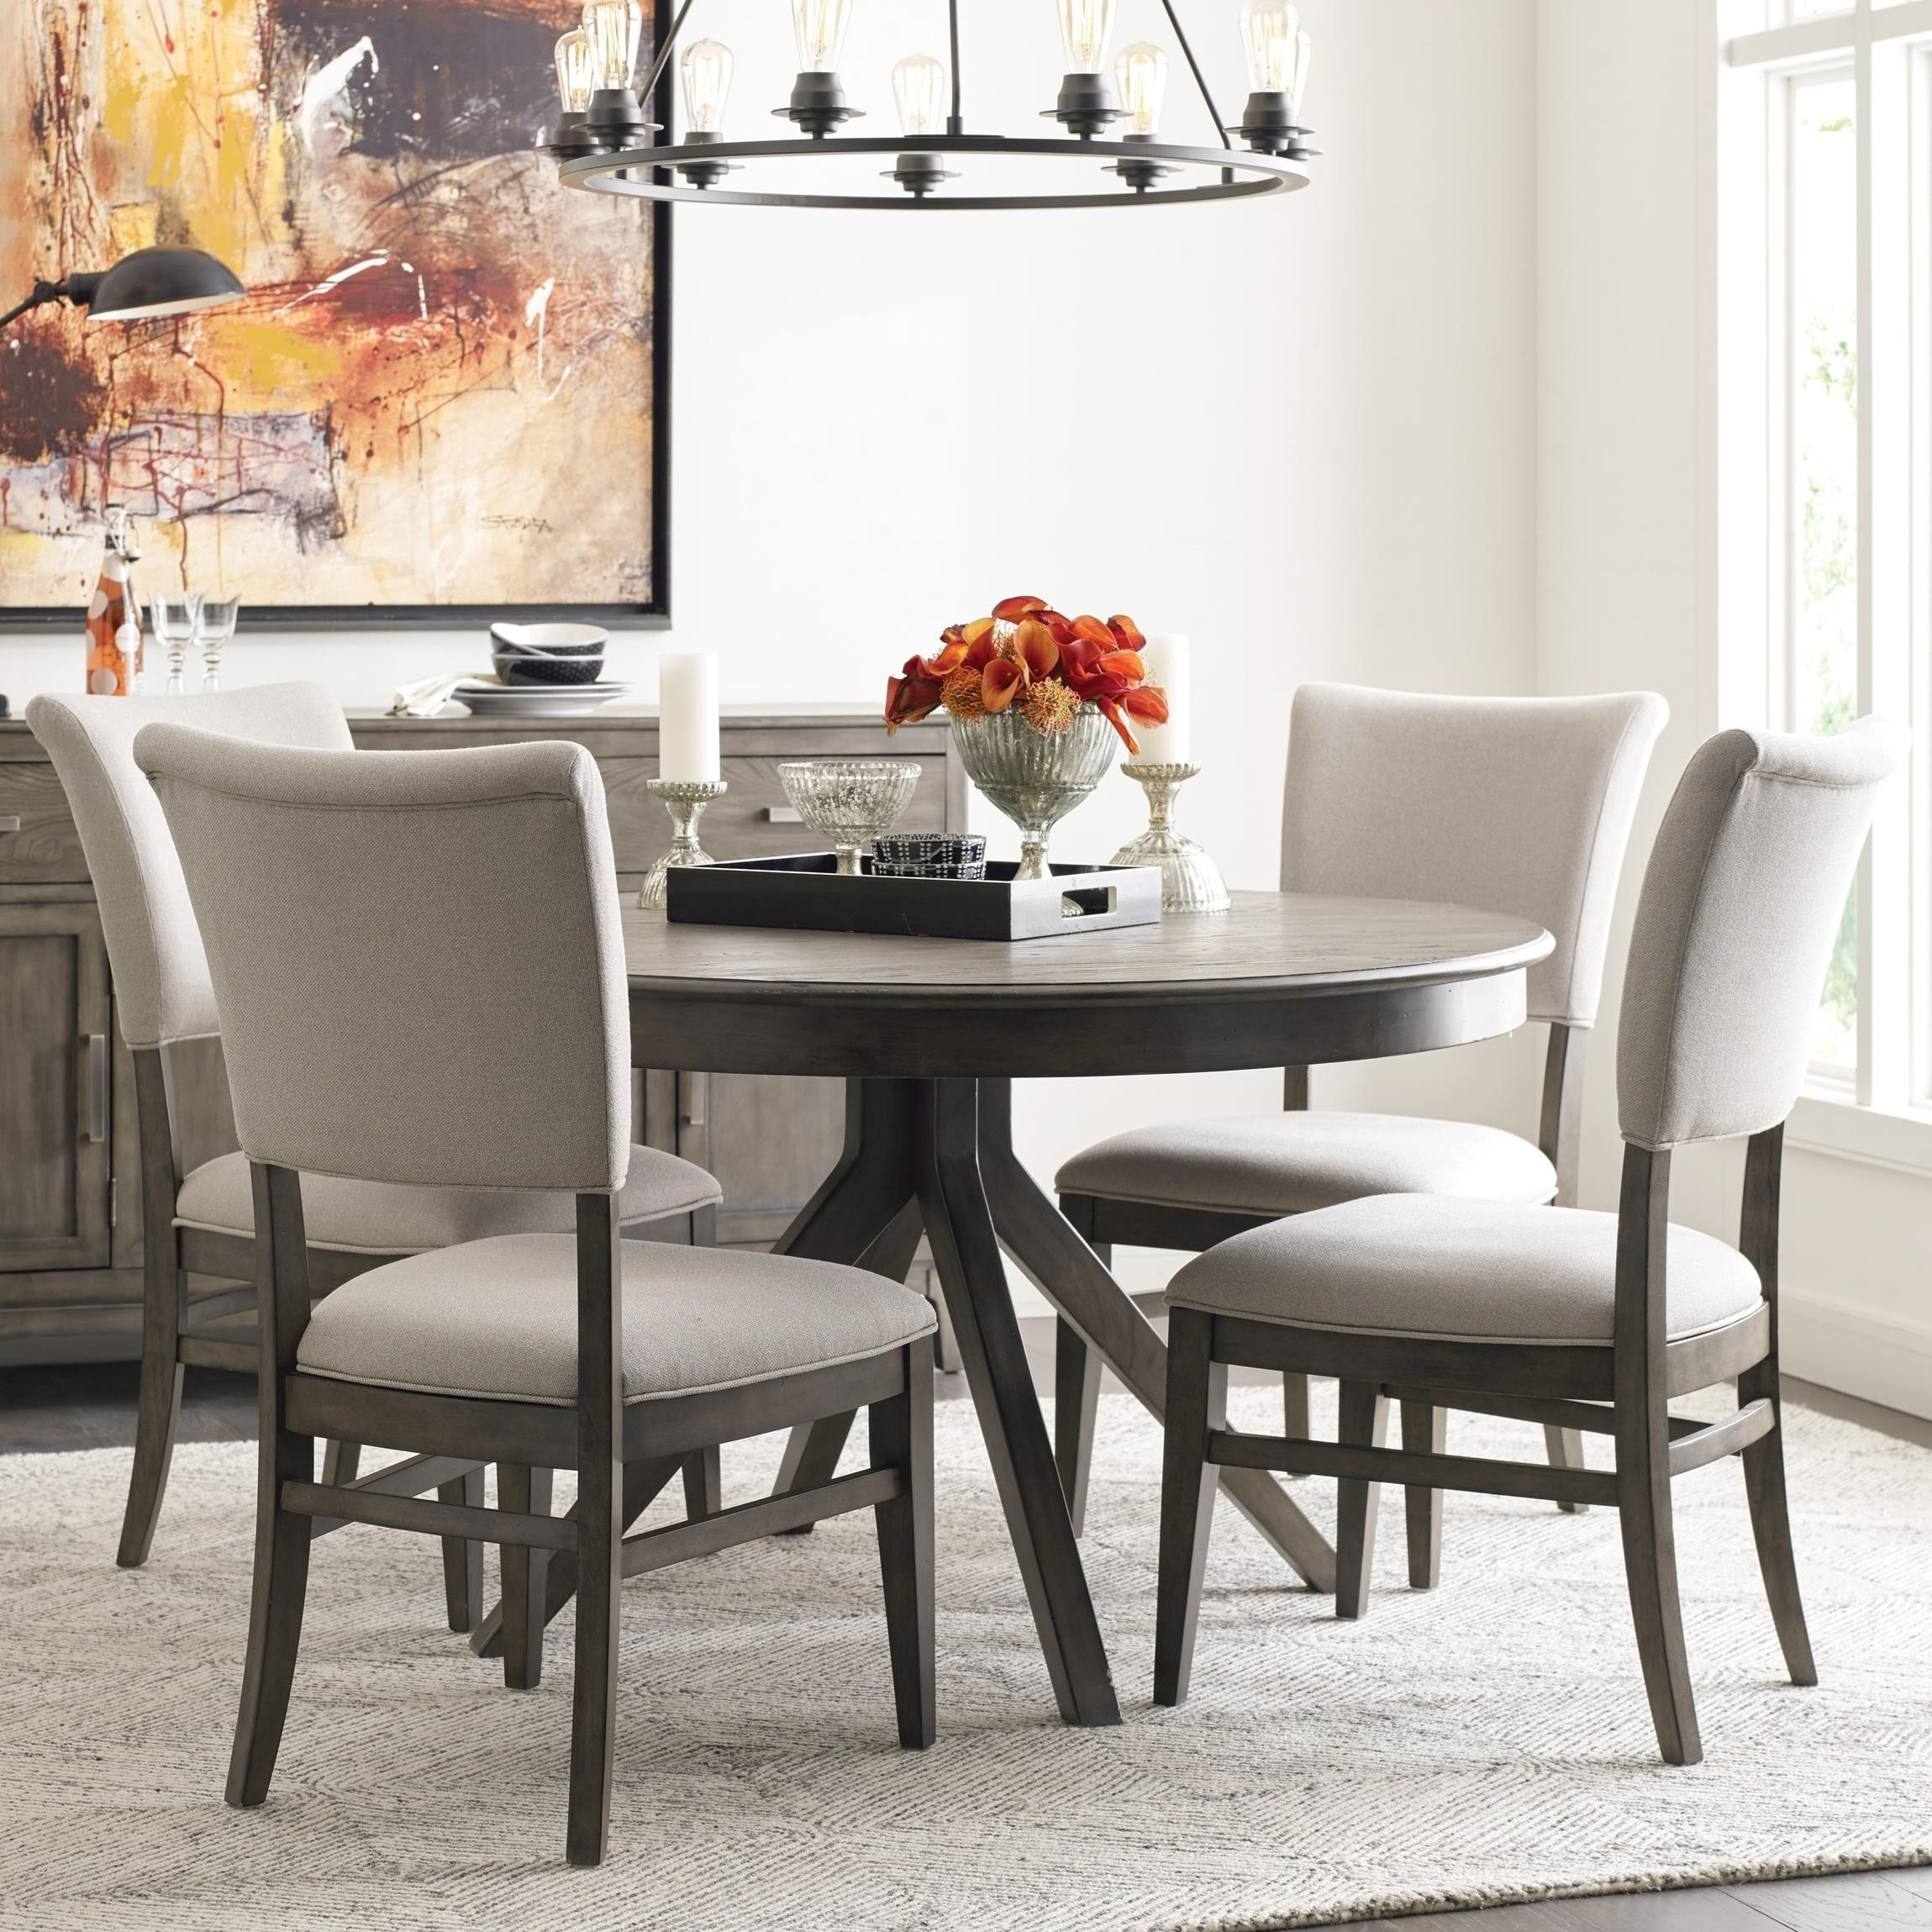 Picture of: Kincaid Furniture Cascade Round Dining Table Set With 4 Chairs Godby Home Furnishings Dining 5 Piece Sets